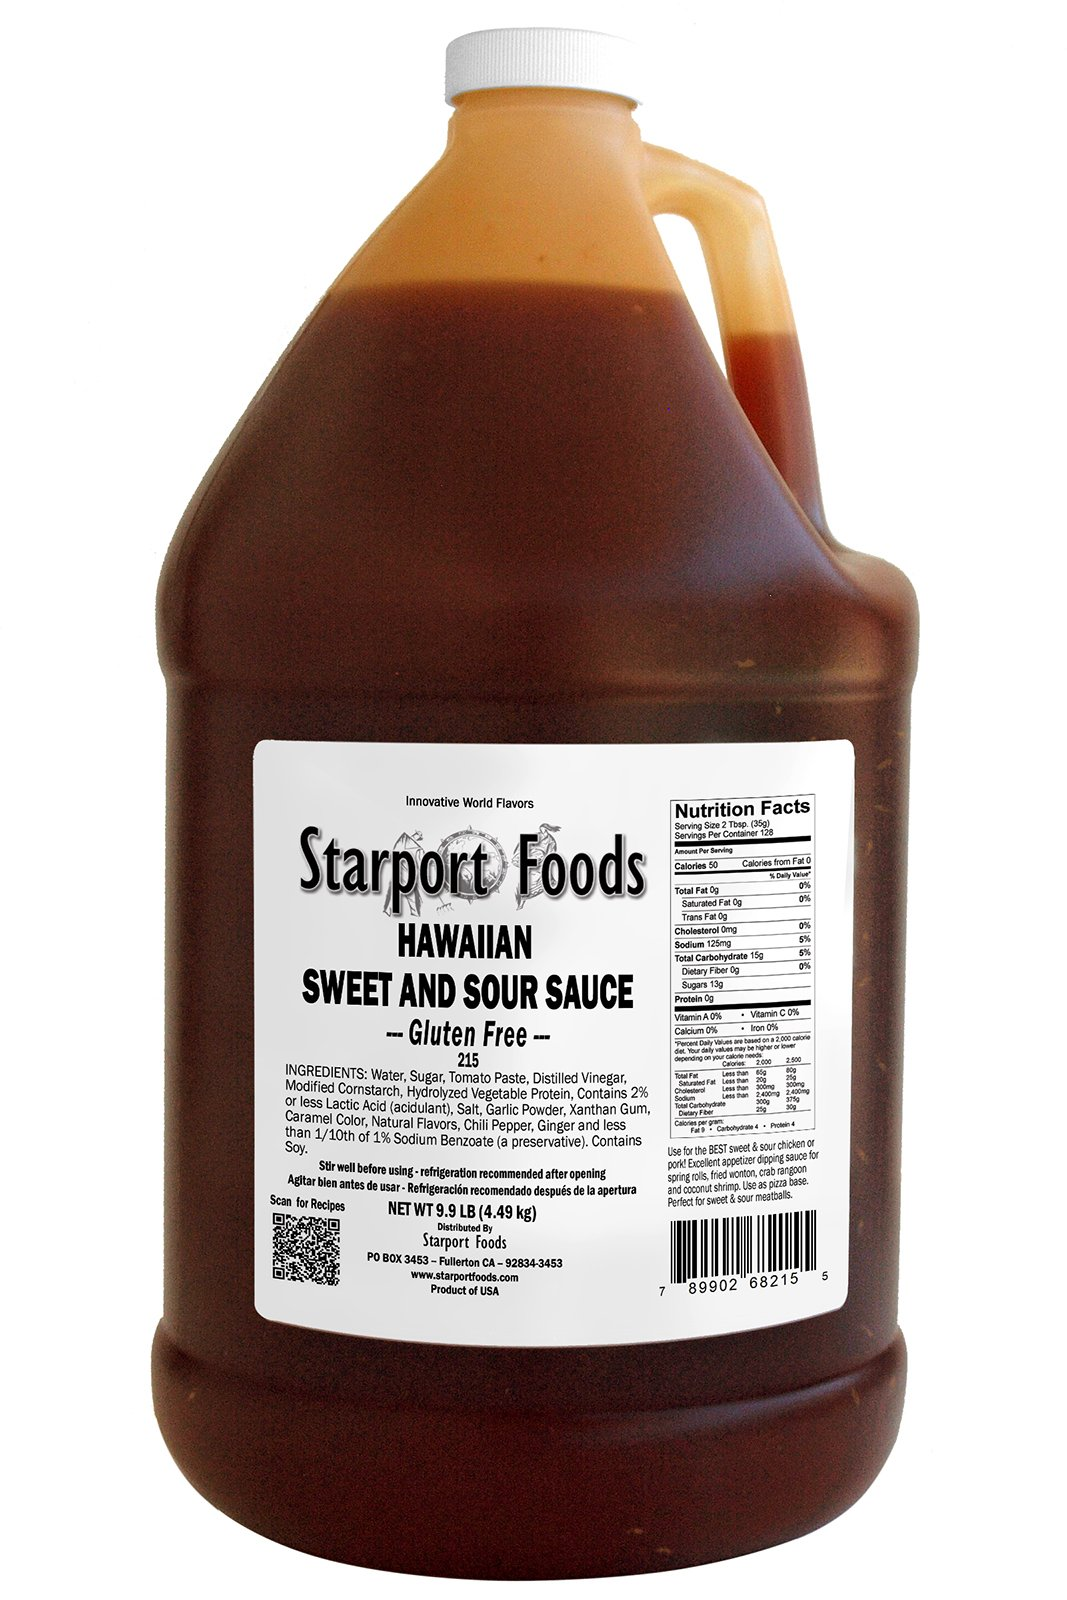 Starport Foods Hawaiian Sweet and Sour Sauce - Gluten Free, 1 gallon (NET WT 9.9 lb, 158 oz) by Starport Foods